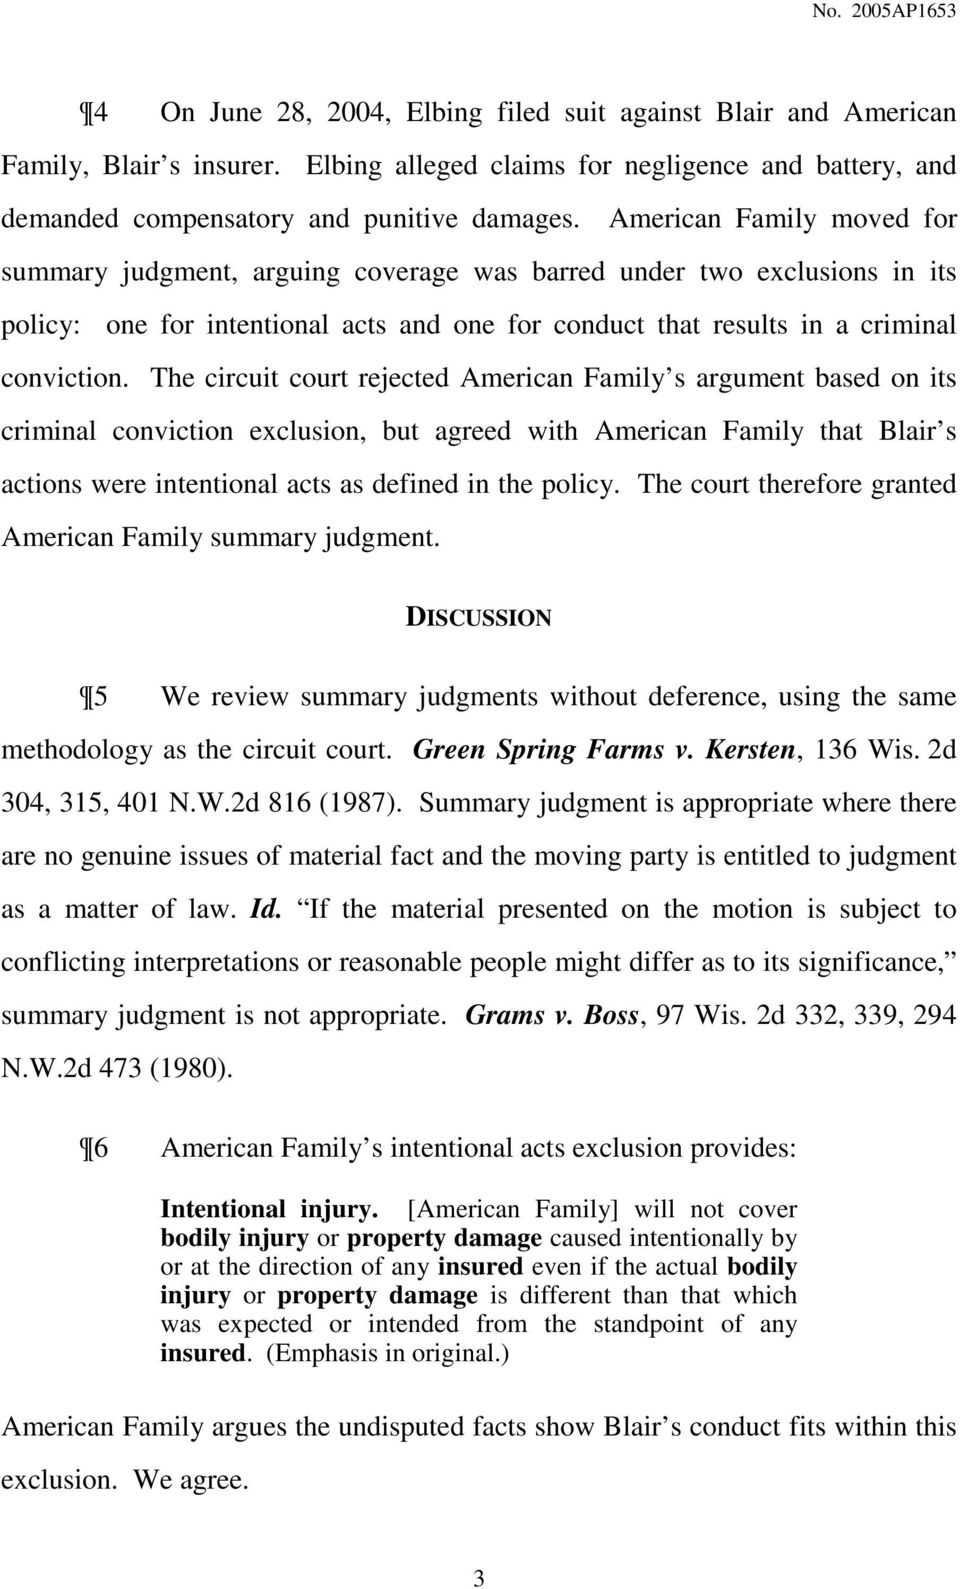 The circuit court rejected American Family s argument based on its criminal conviction exclusion, but agreed with American Family that Blair s actions were intentional acts as defined in the policy.